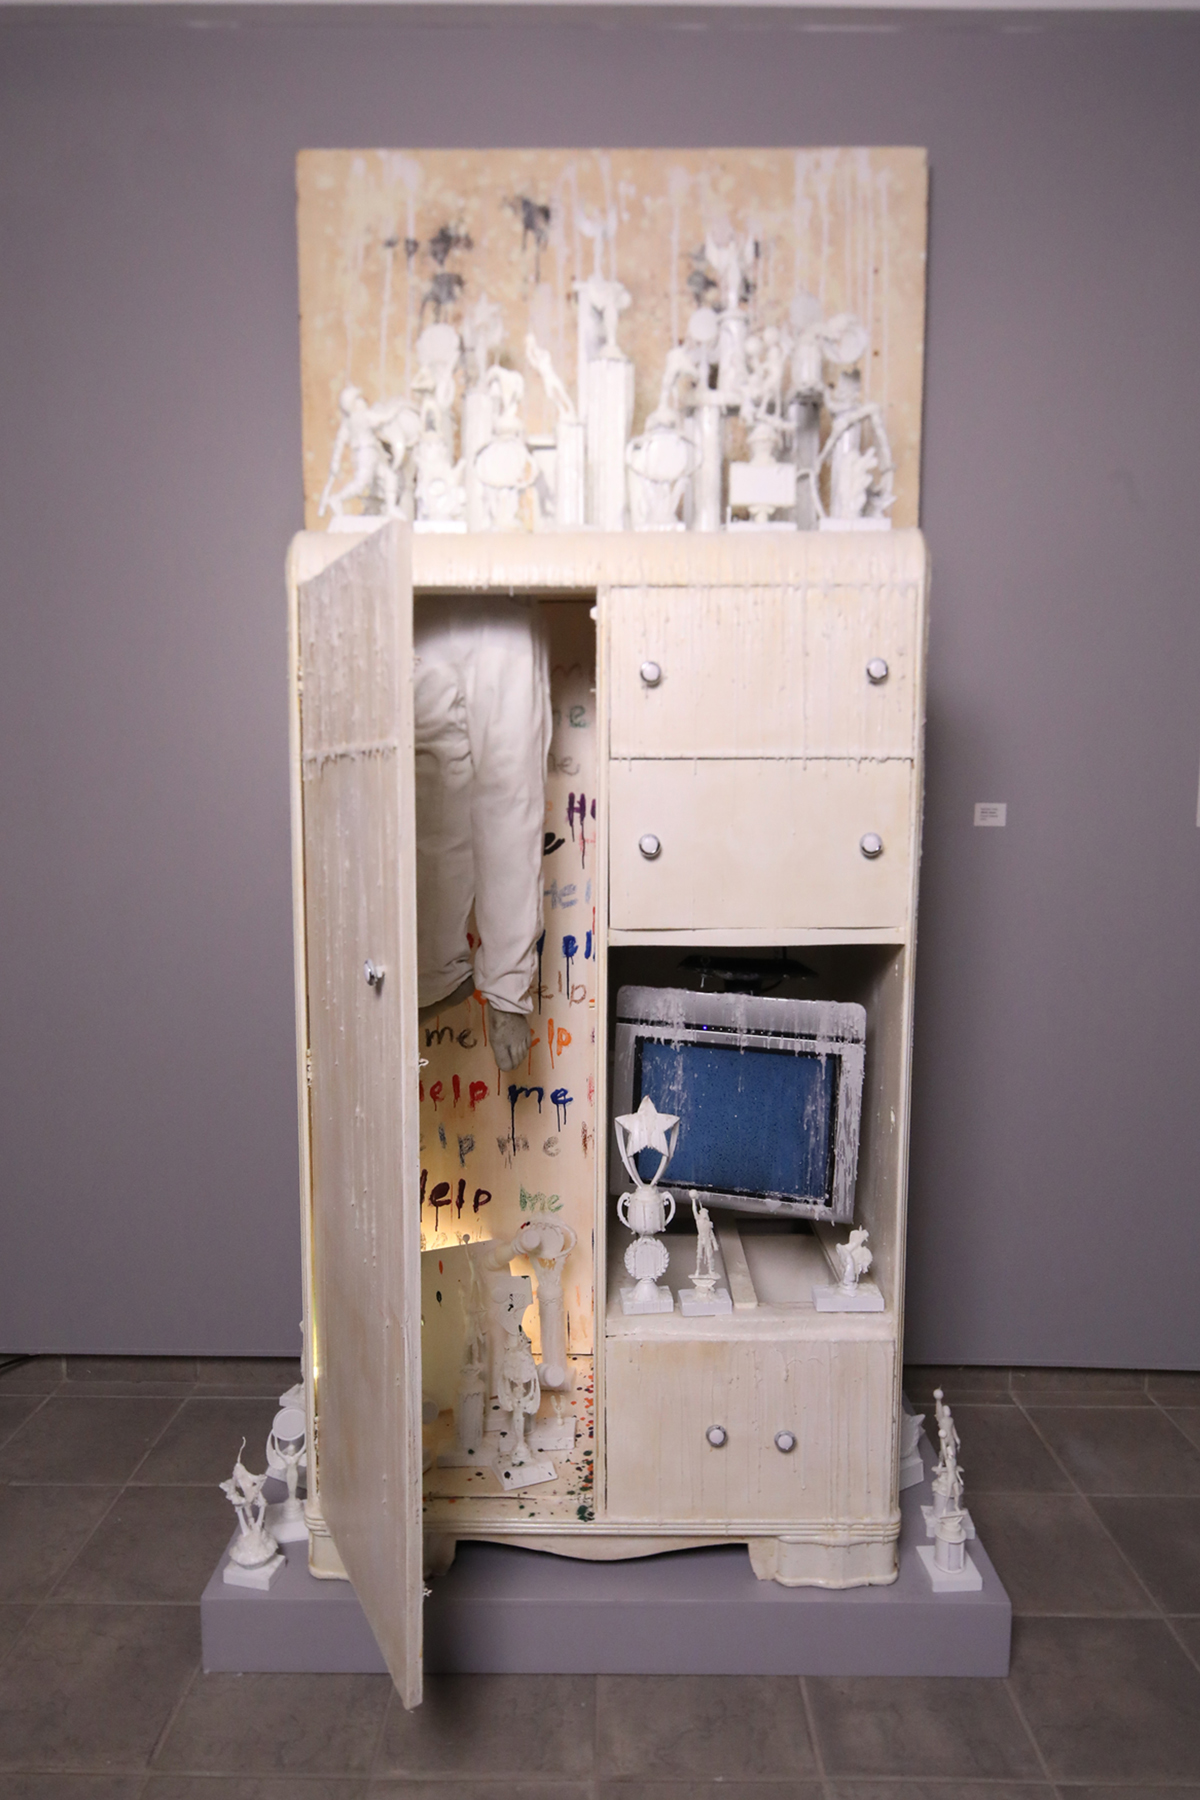 A found object sculpture featuring a dresser, small white sculptures and other objects.